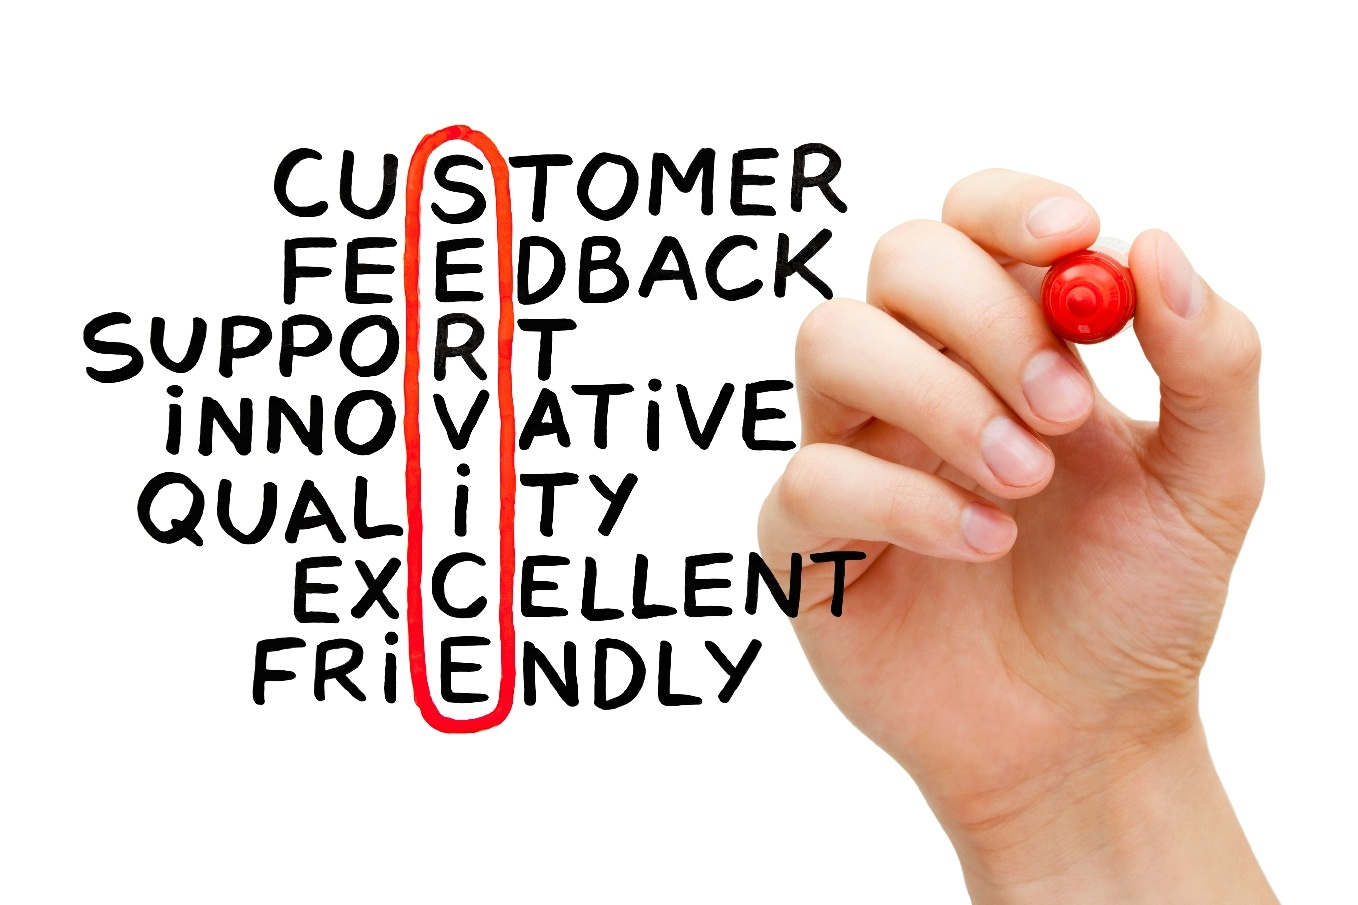 Customer Service and Getting the Right Products